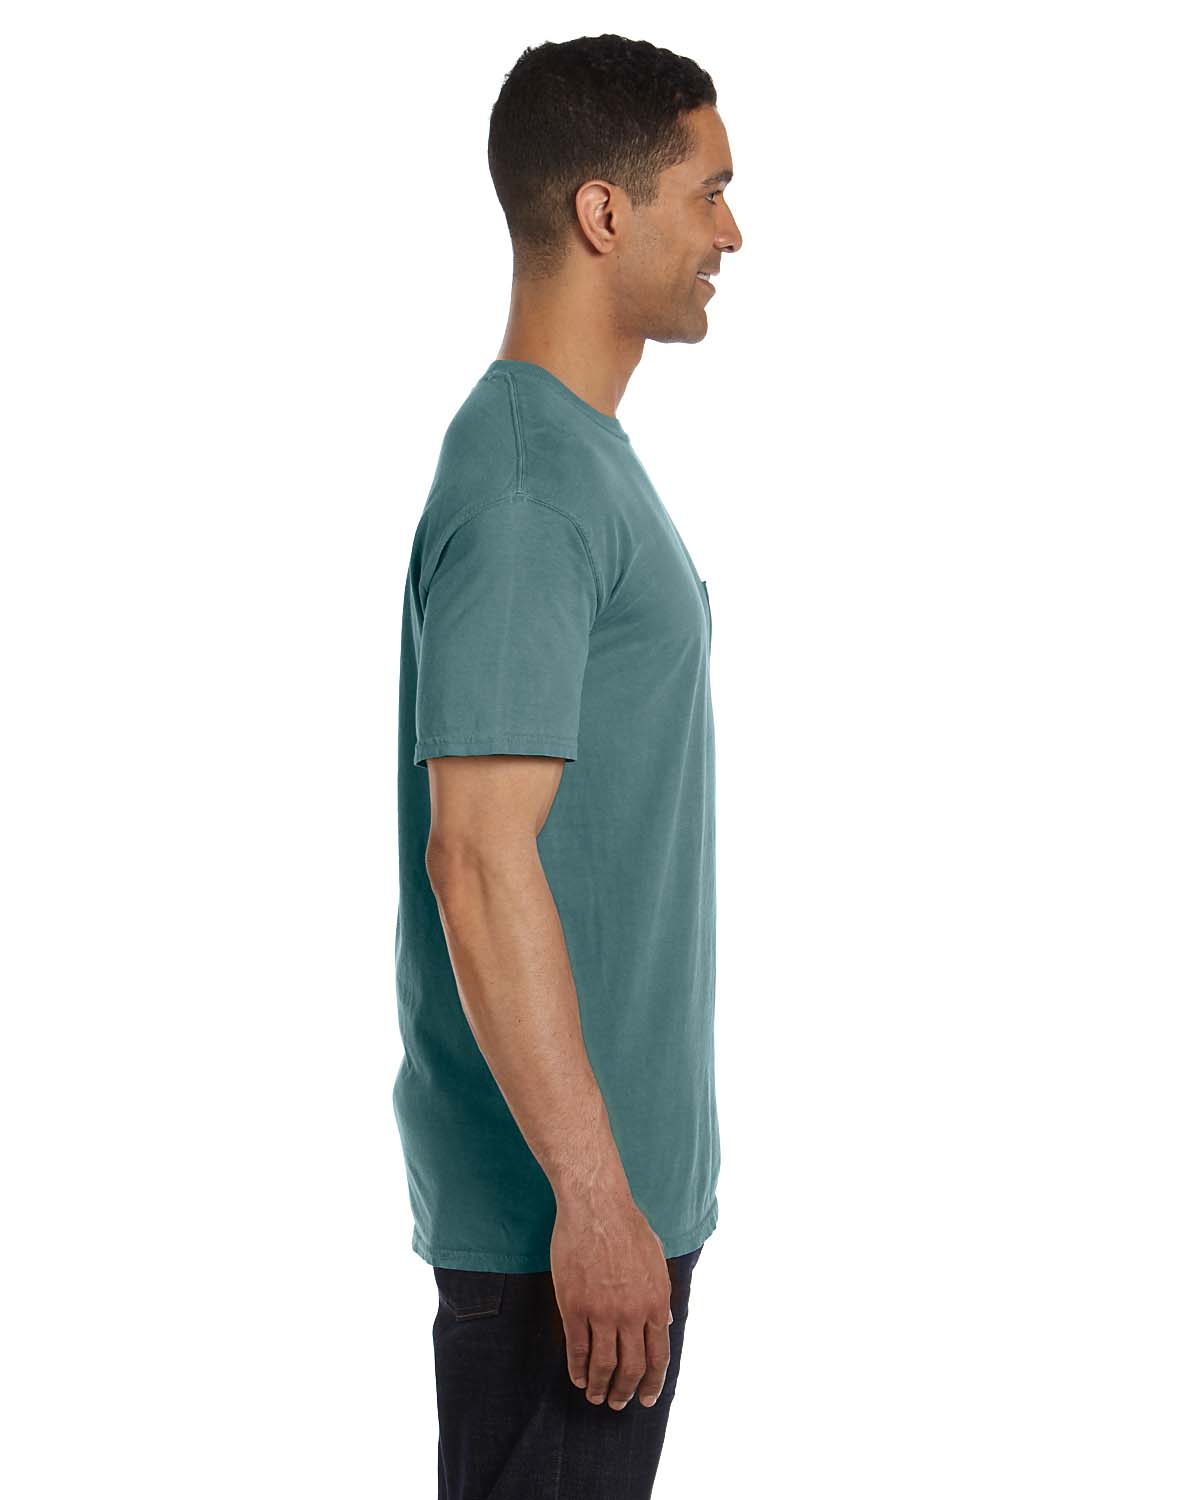 Comfort-Colors-Men-039-s-6-1-oz-Garment-Dyed-Pocket-T-Shirt-6030CC-S-3XL thumbnail 12